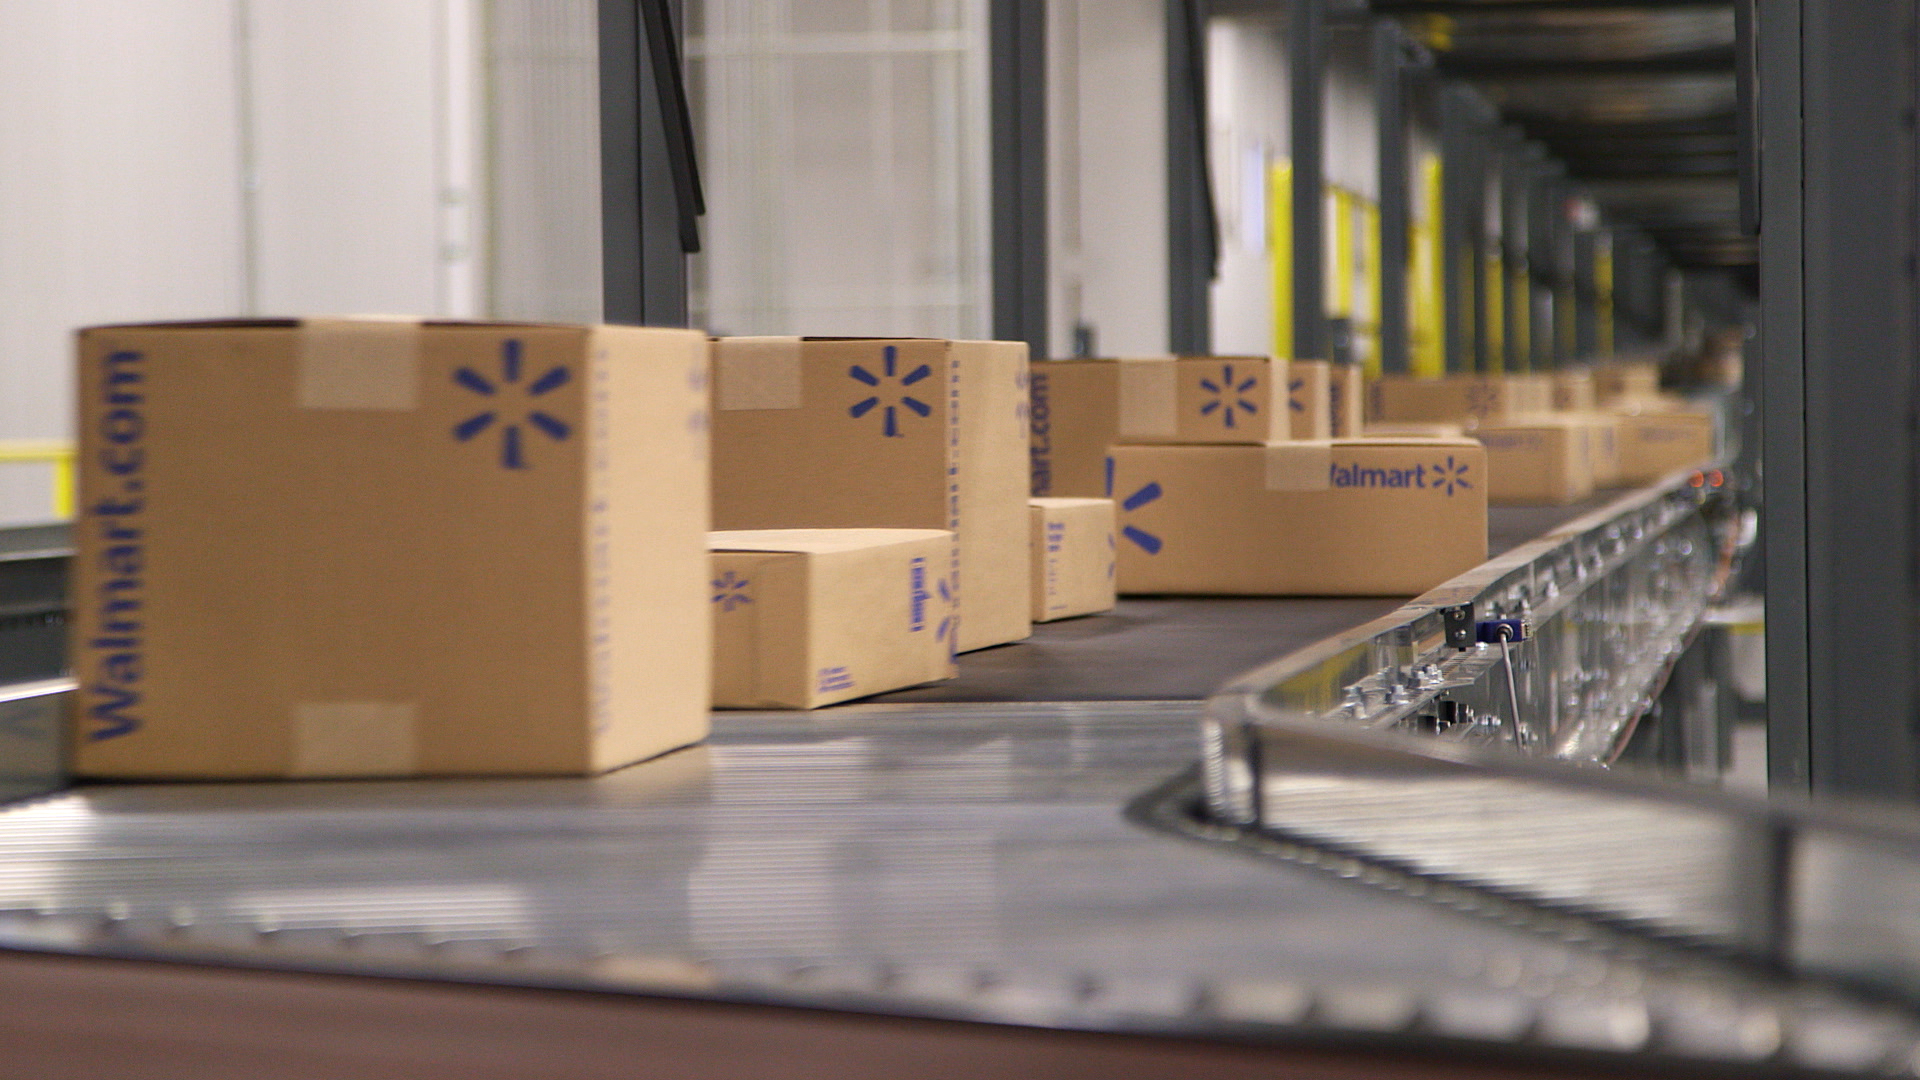 Walmart is launching a same-day, text-order delivery service